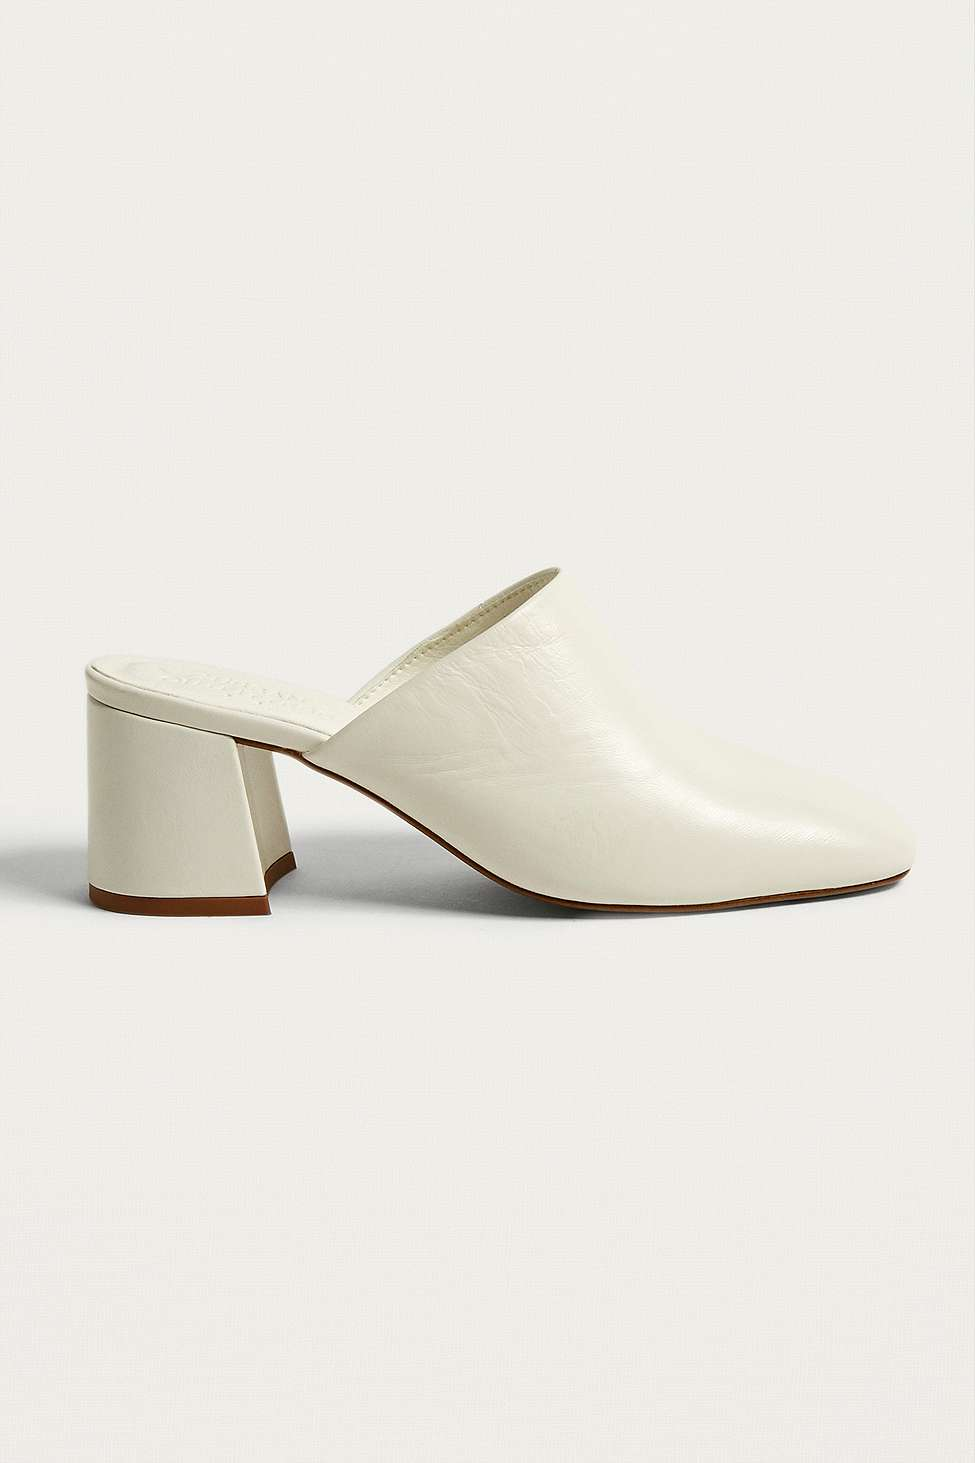 Coco Ecru Square Toe Heeled Mules, White